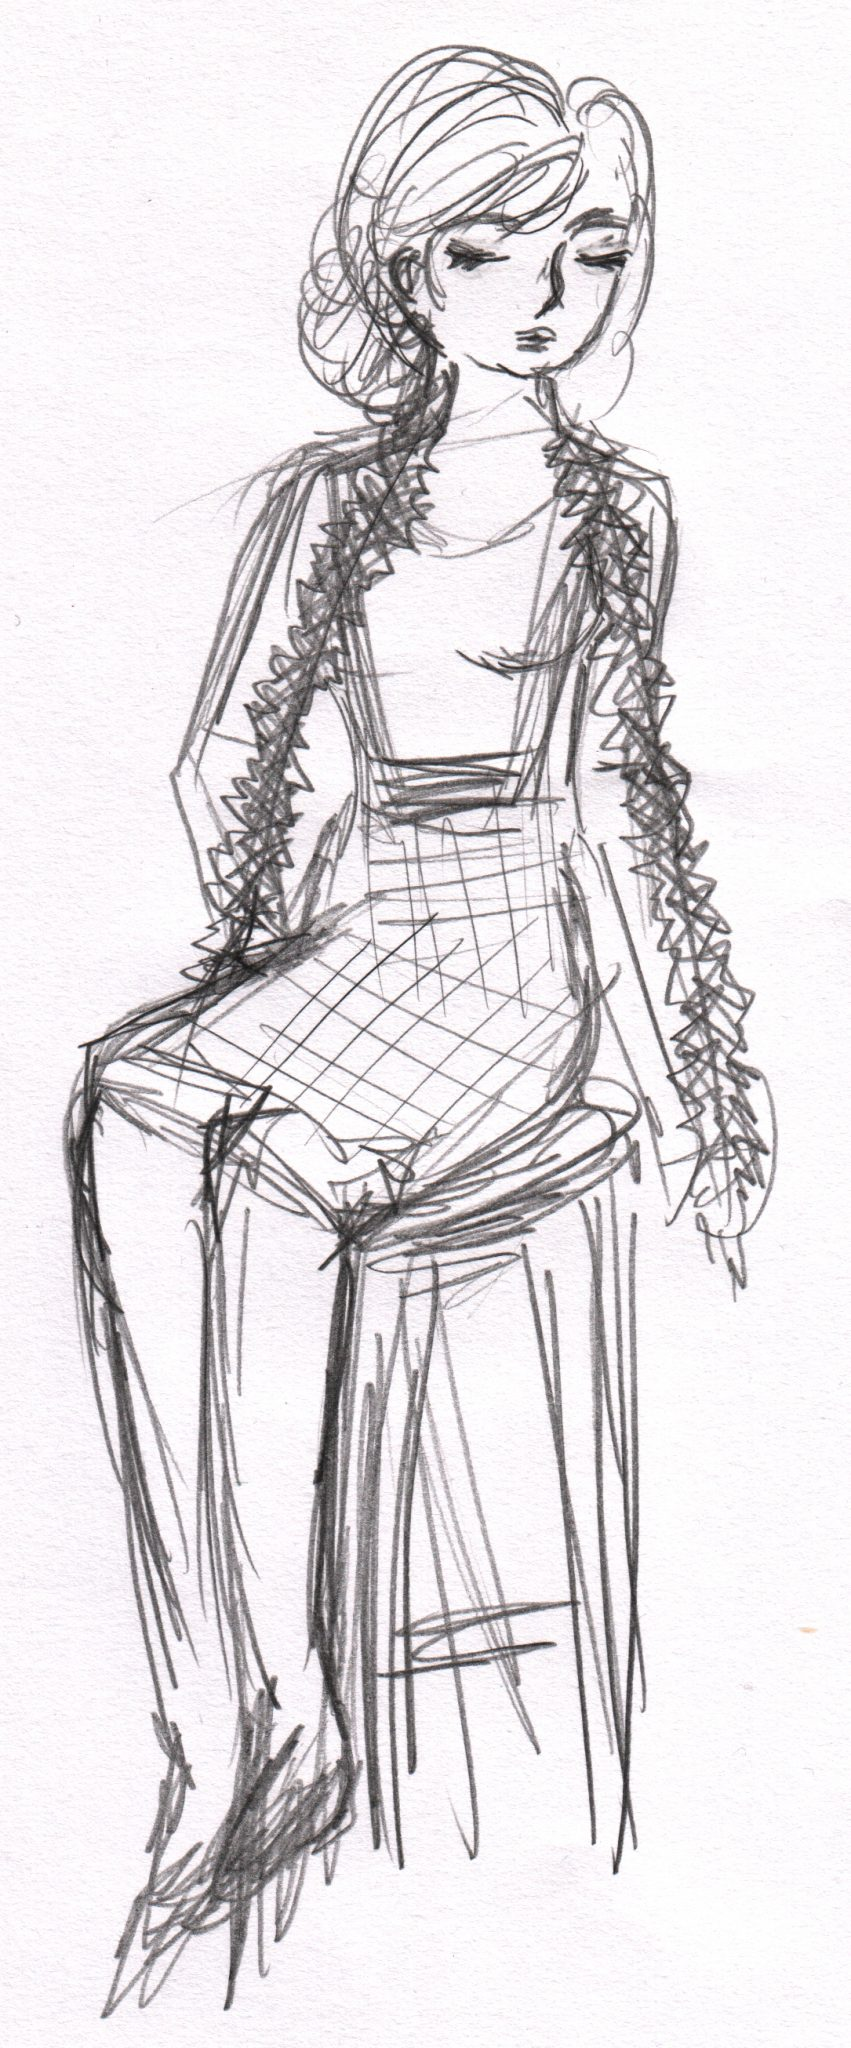 A sketch of one of the performers at Dr Sketchy's Christams, the singer sits with tinsel draped over her shoulders, she wears a tartan pinafore.